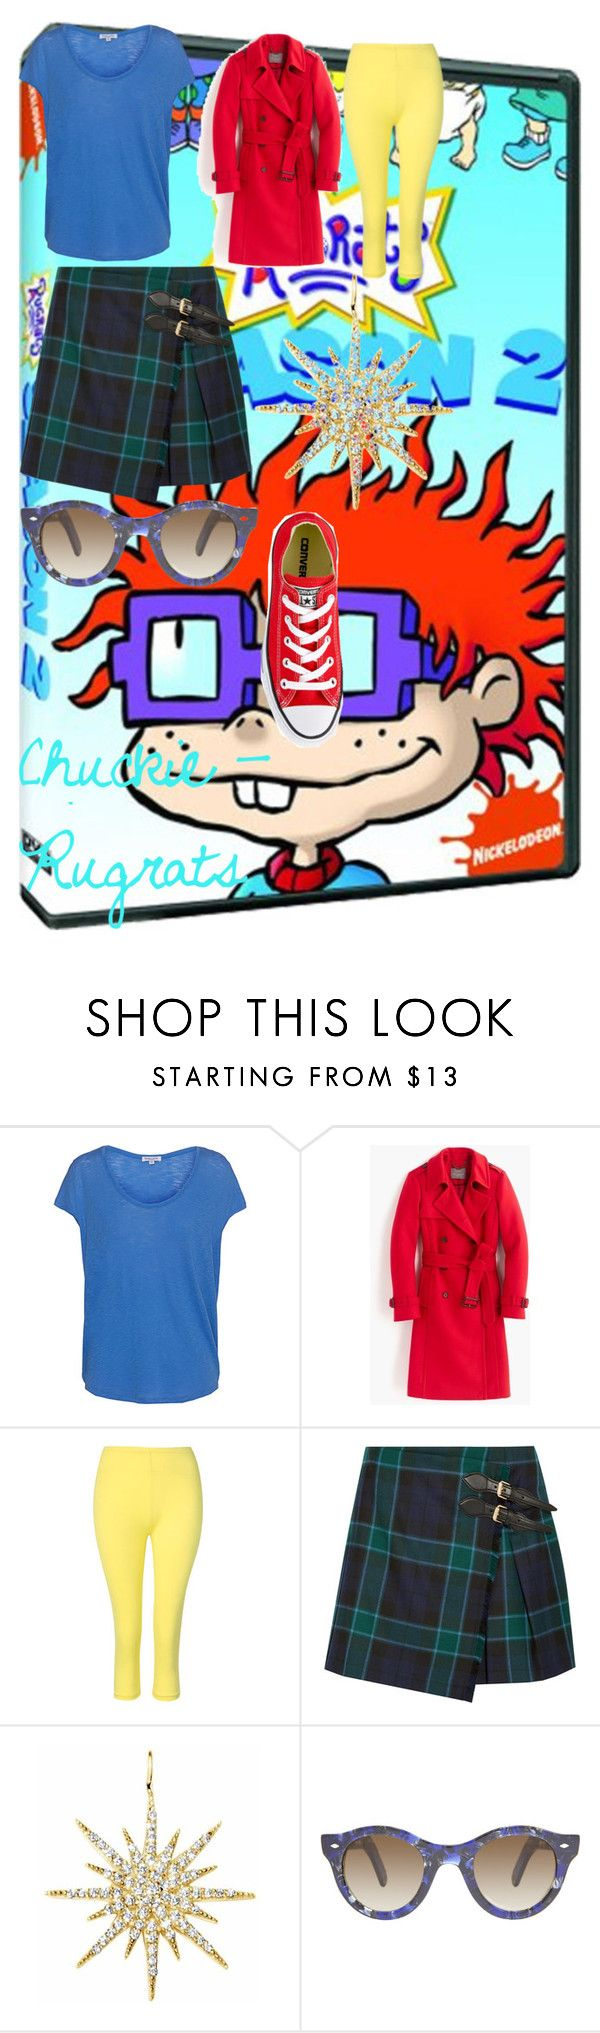 """Chuckie - Rugrats"" by oroartye-1 on Polyvore featuring Splendid, J.Crew, Burberry, Talia Naomi, Cutler and Gross and Converse"